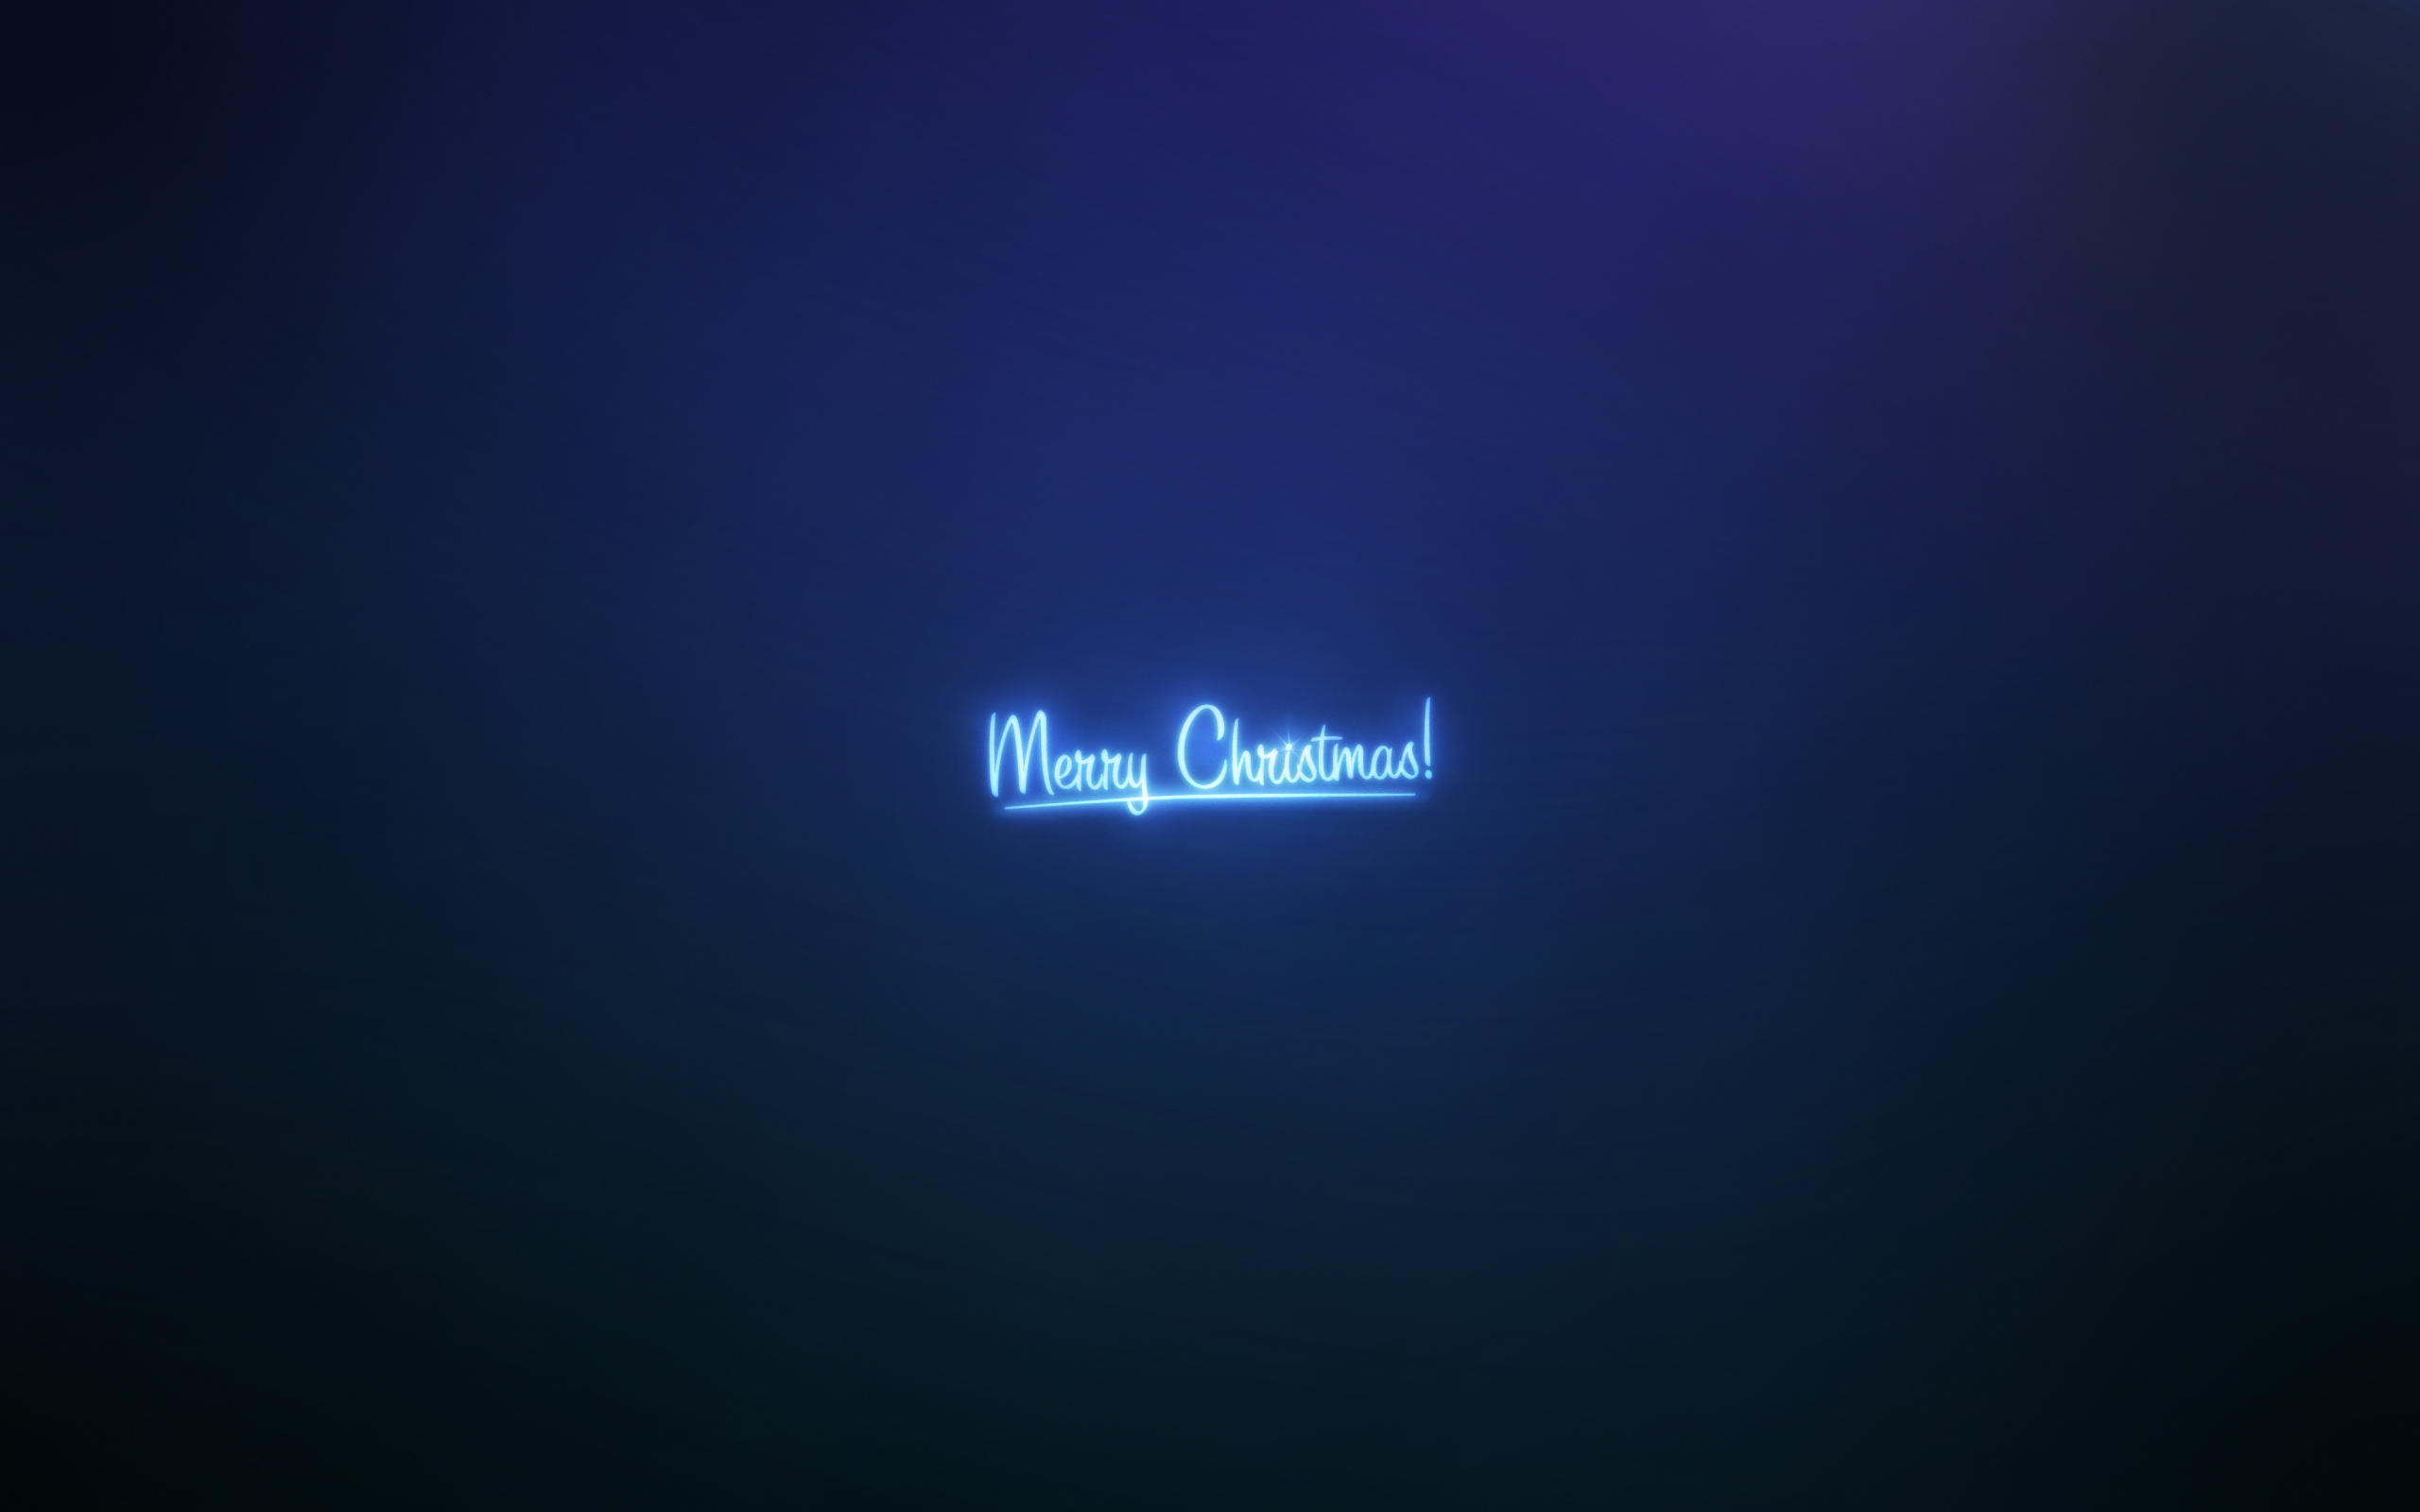 2560x1440 Merry Christmas Wallpaper YouTube Channel Cover